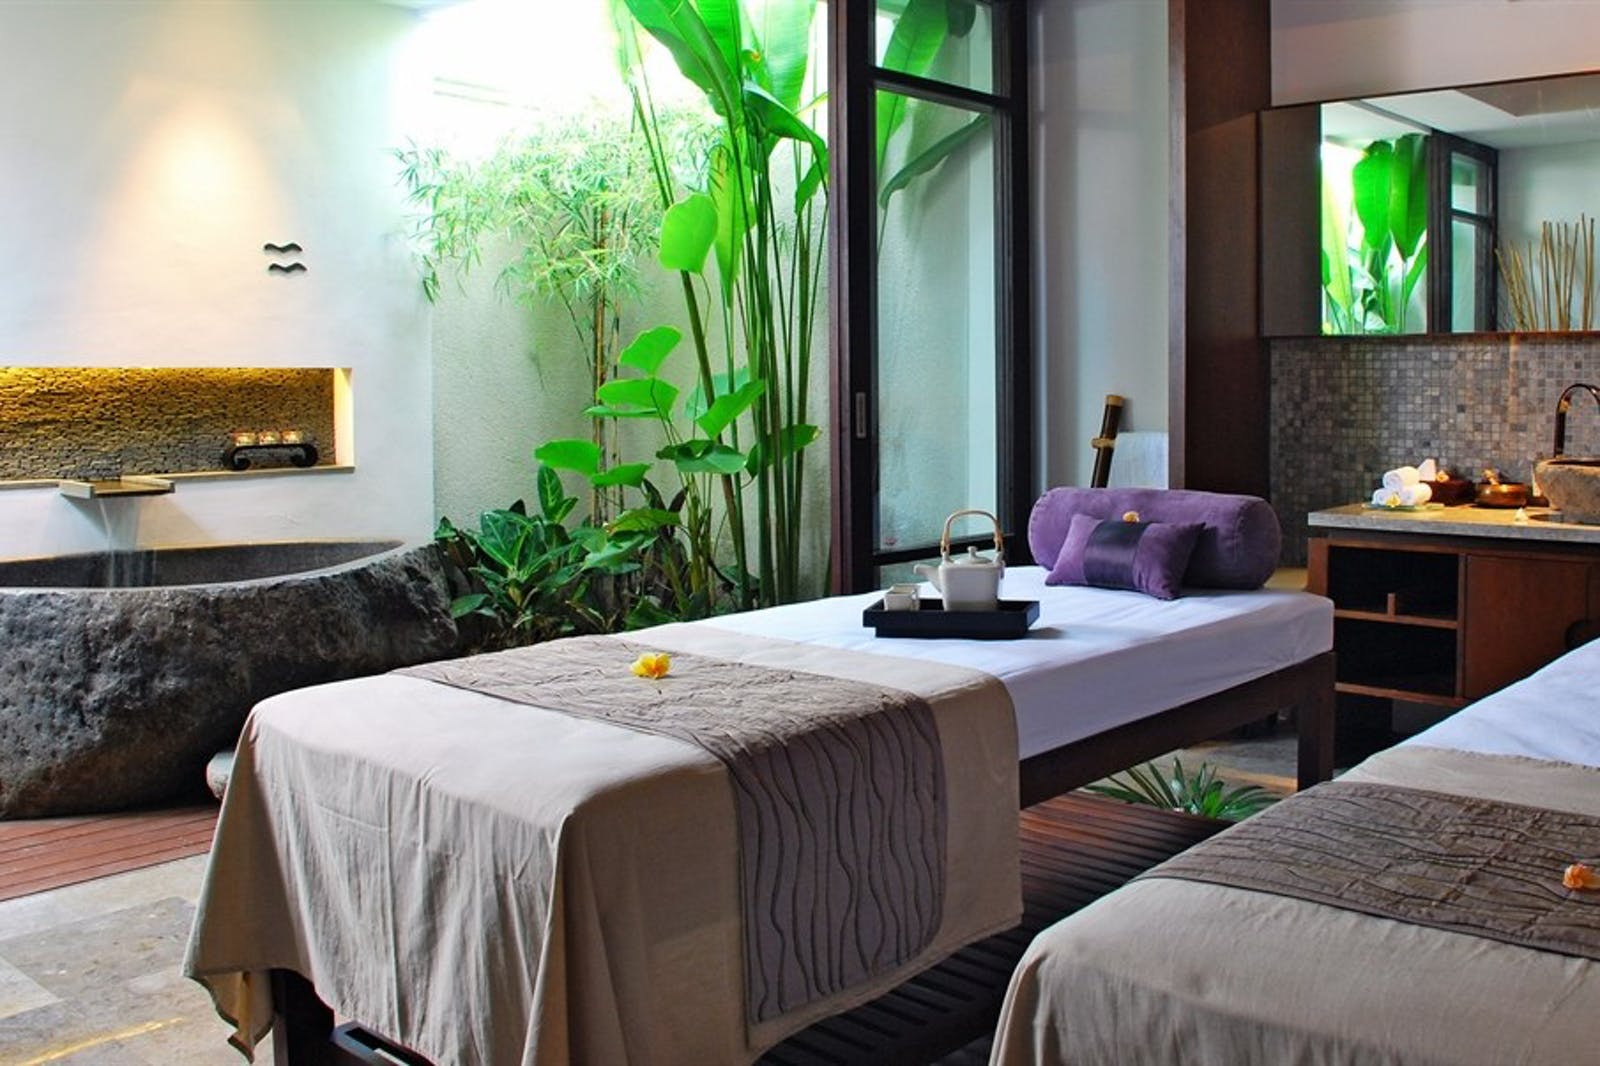 Spa Treatment Room at The Amala, Bali